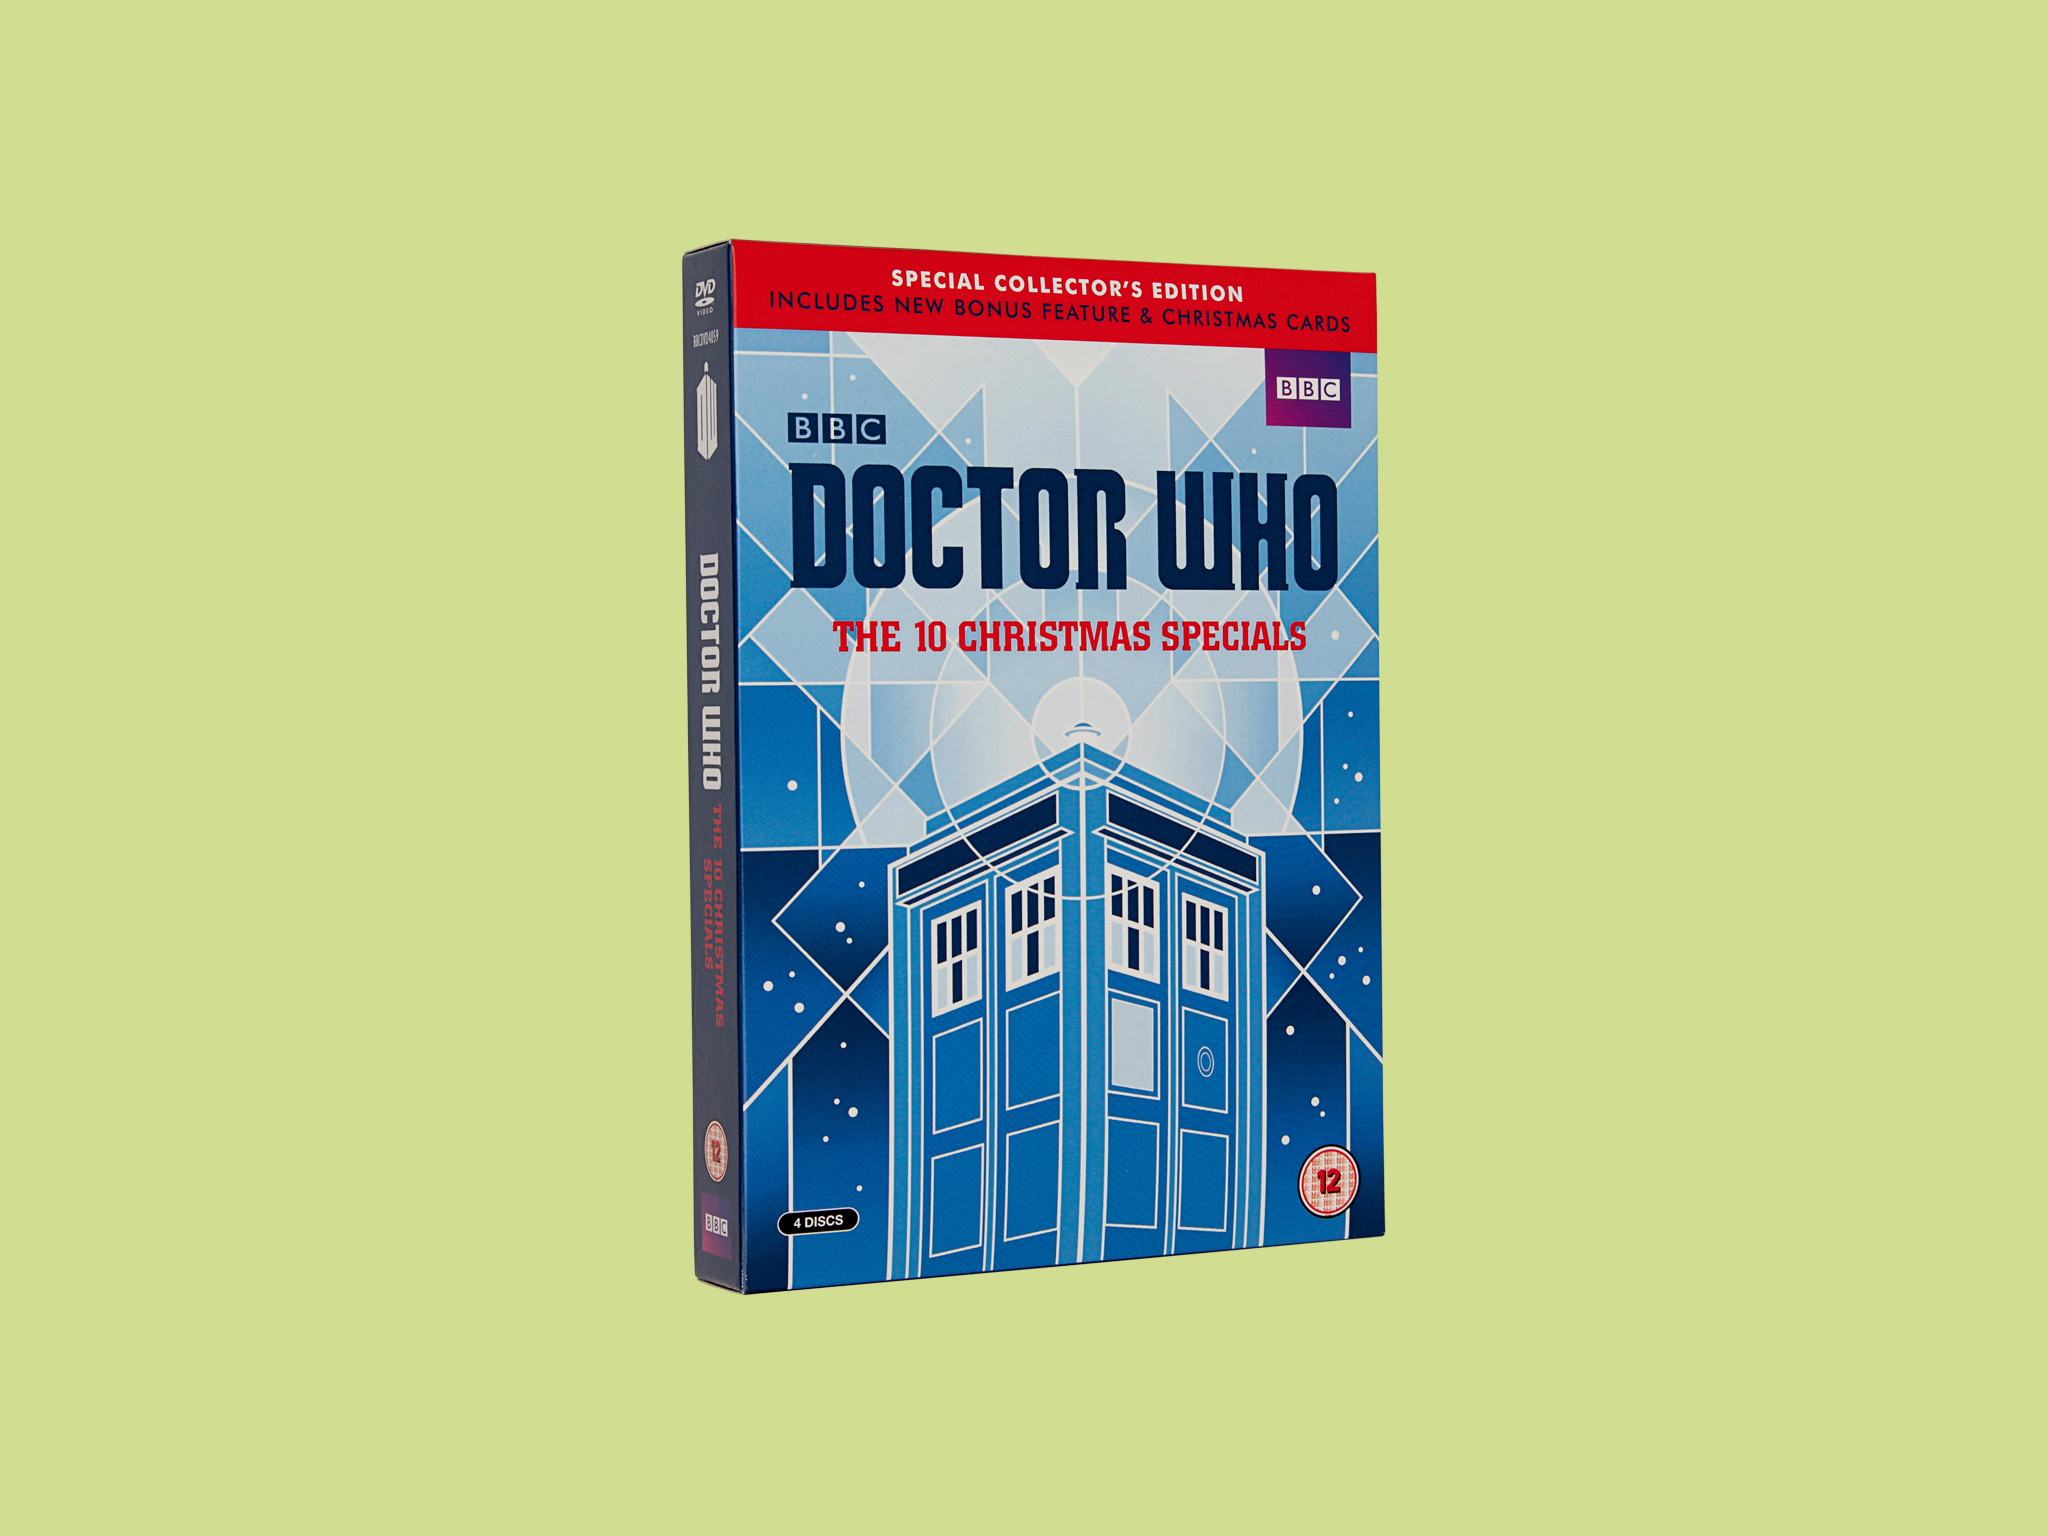 'Doctor Who: The 10 Christmas Specials'